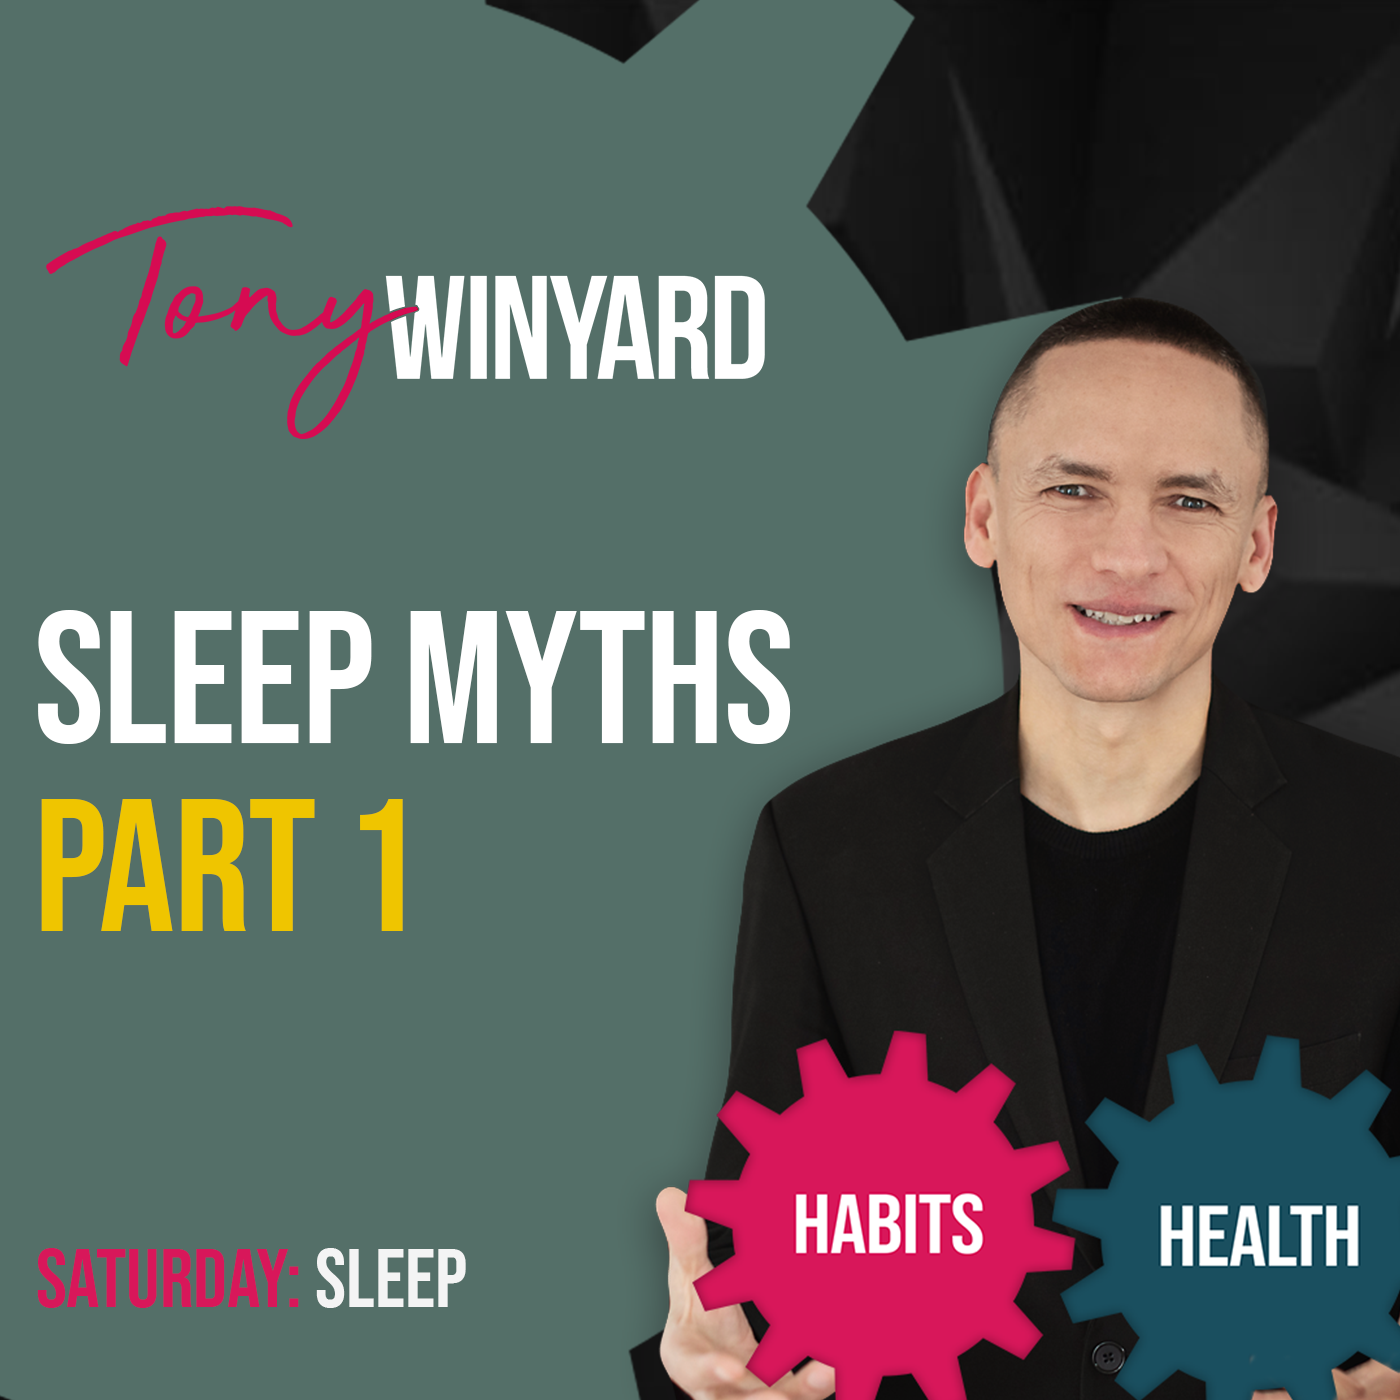 Sleep myths part 1